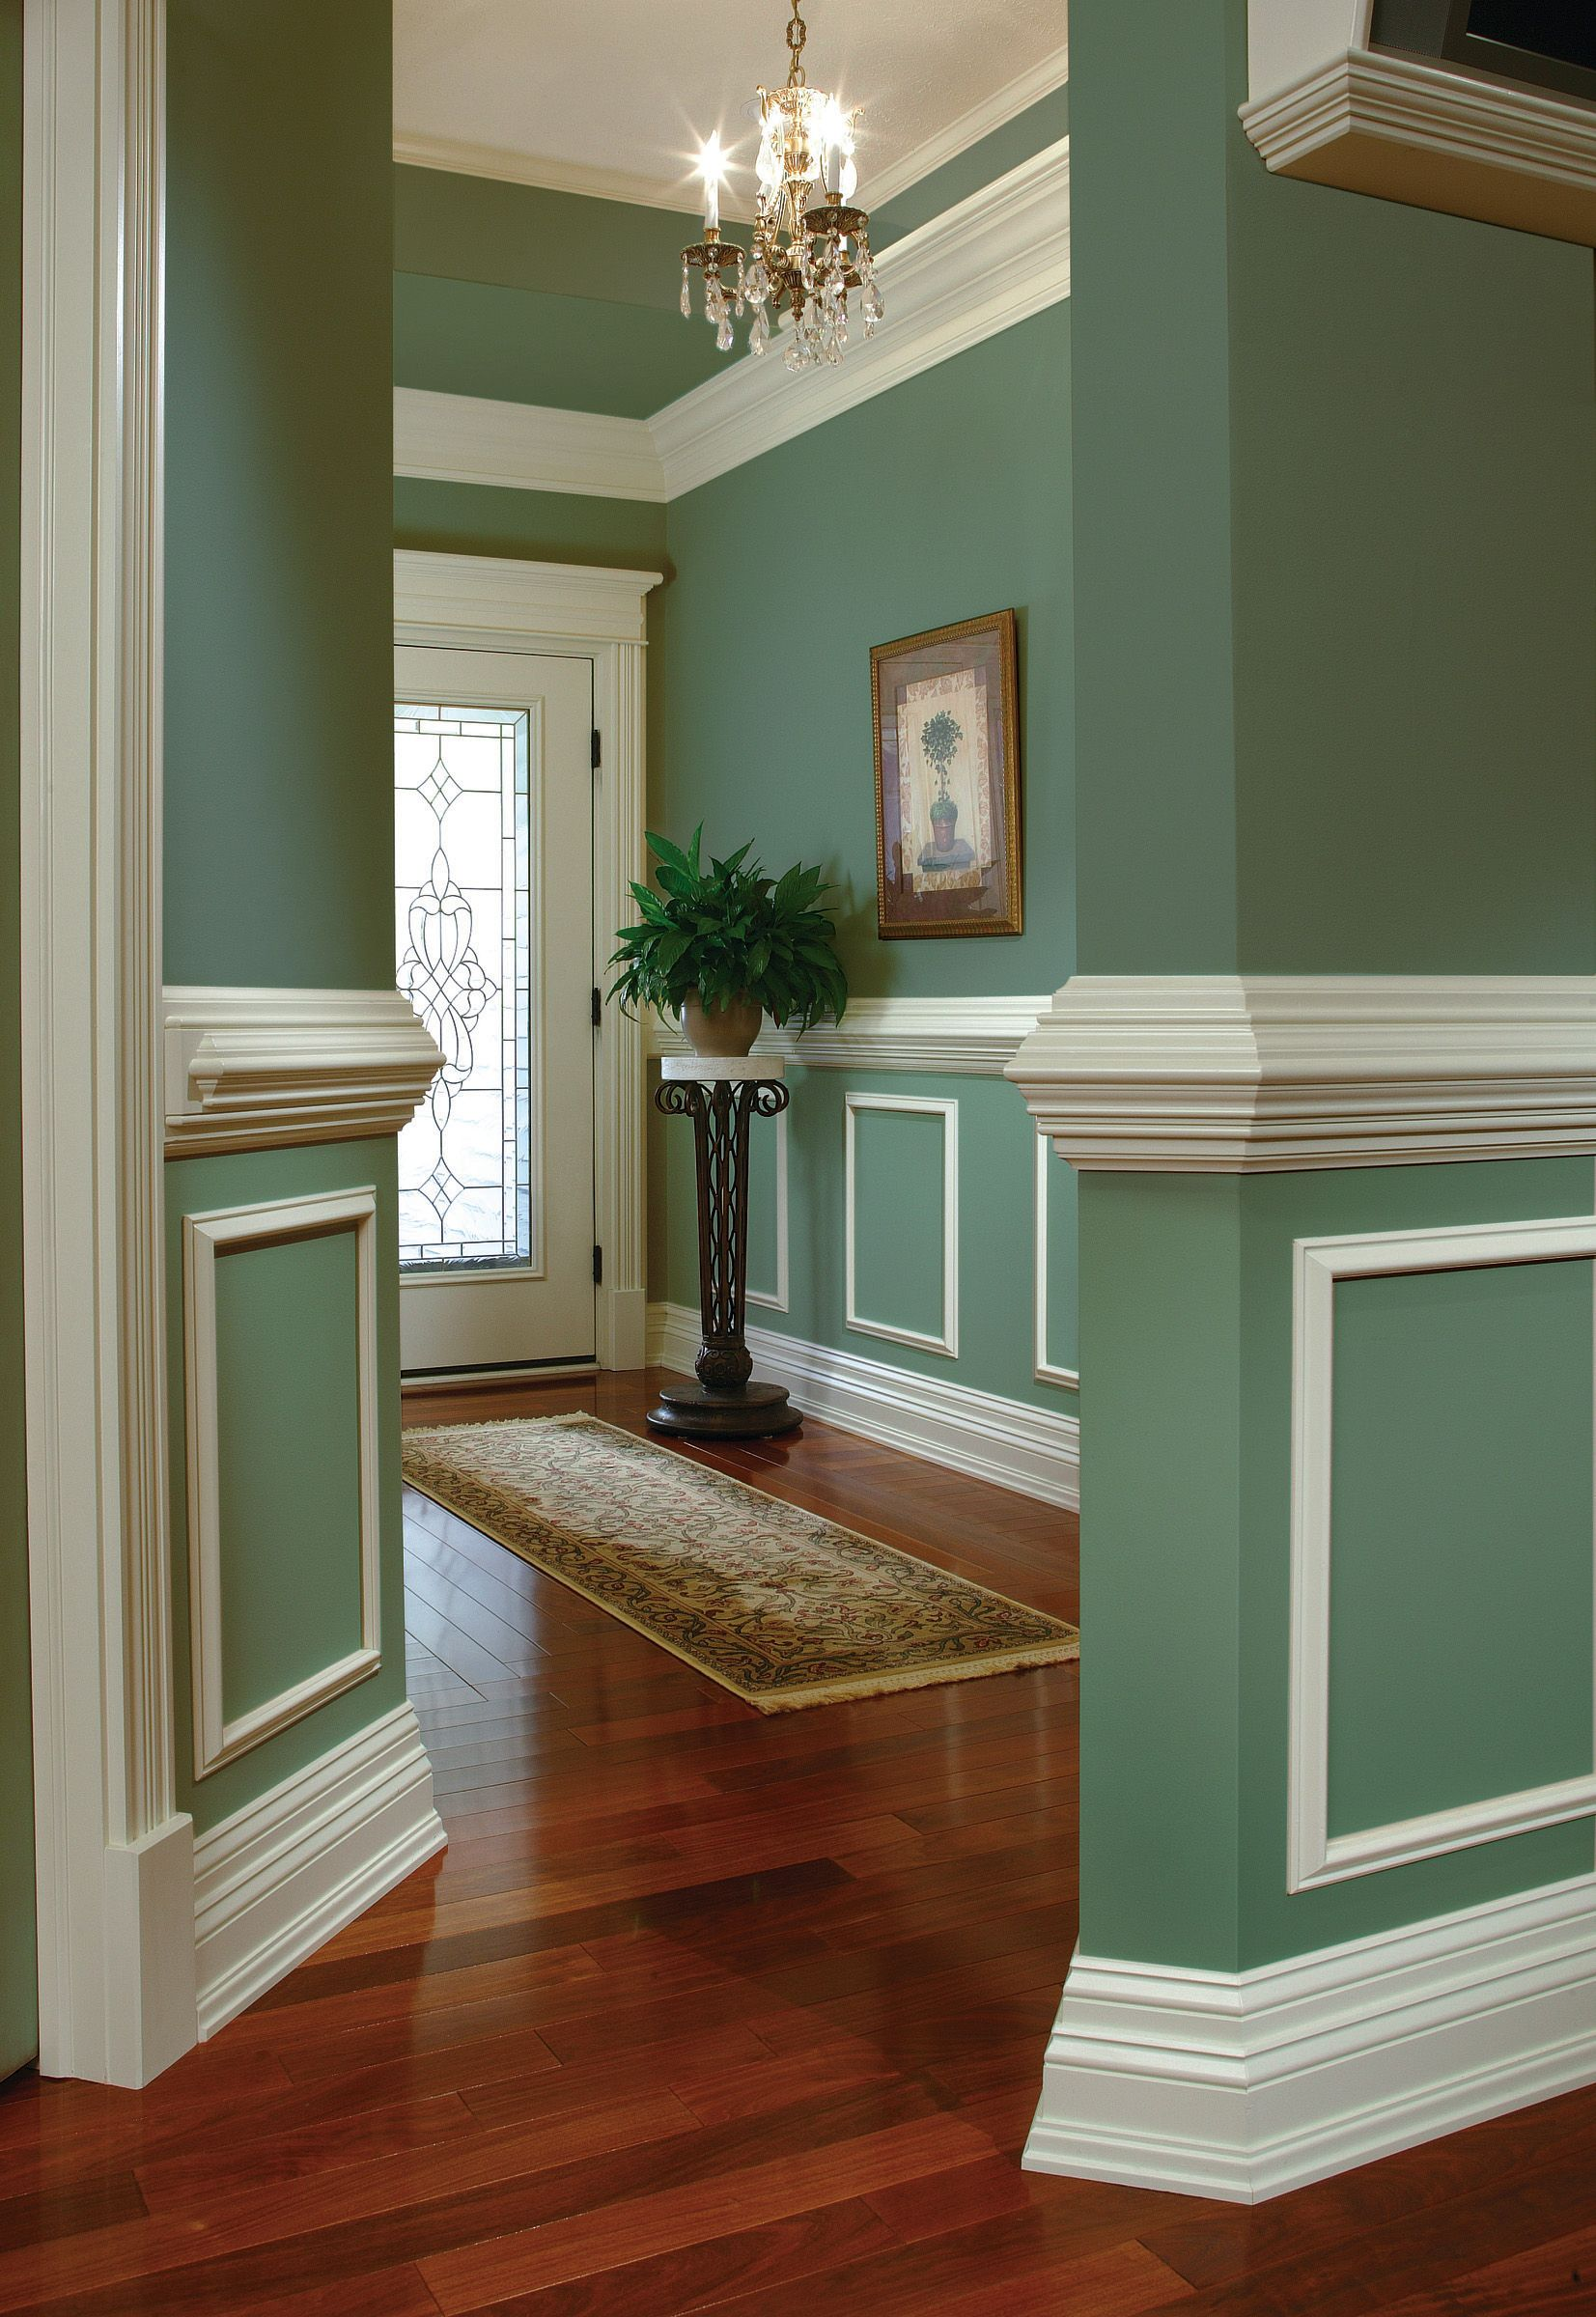 Practical And Decorative A Chair Rail Adds Elegance To Any Room Wall Molding Design Home Renovation Home Decor